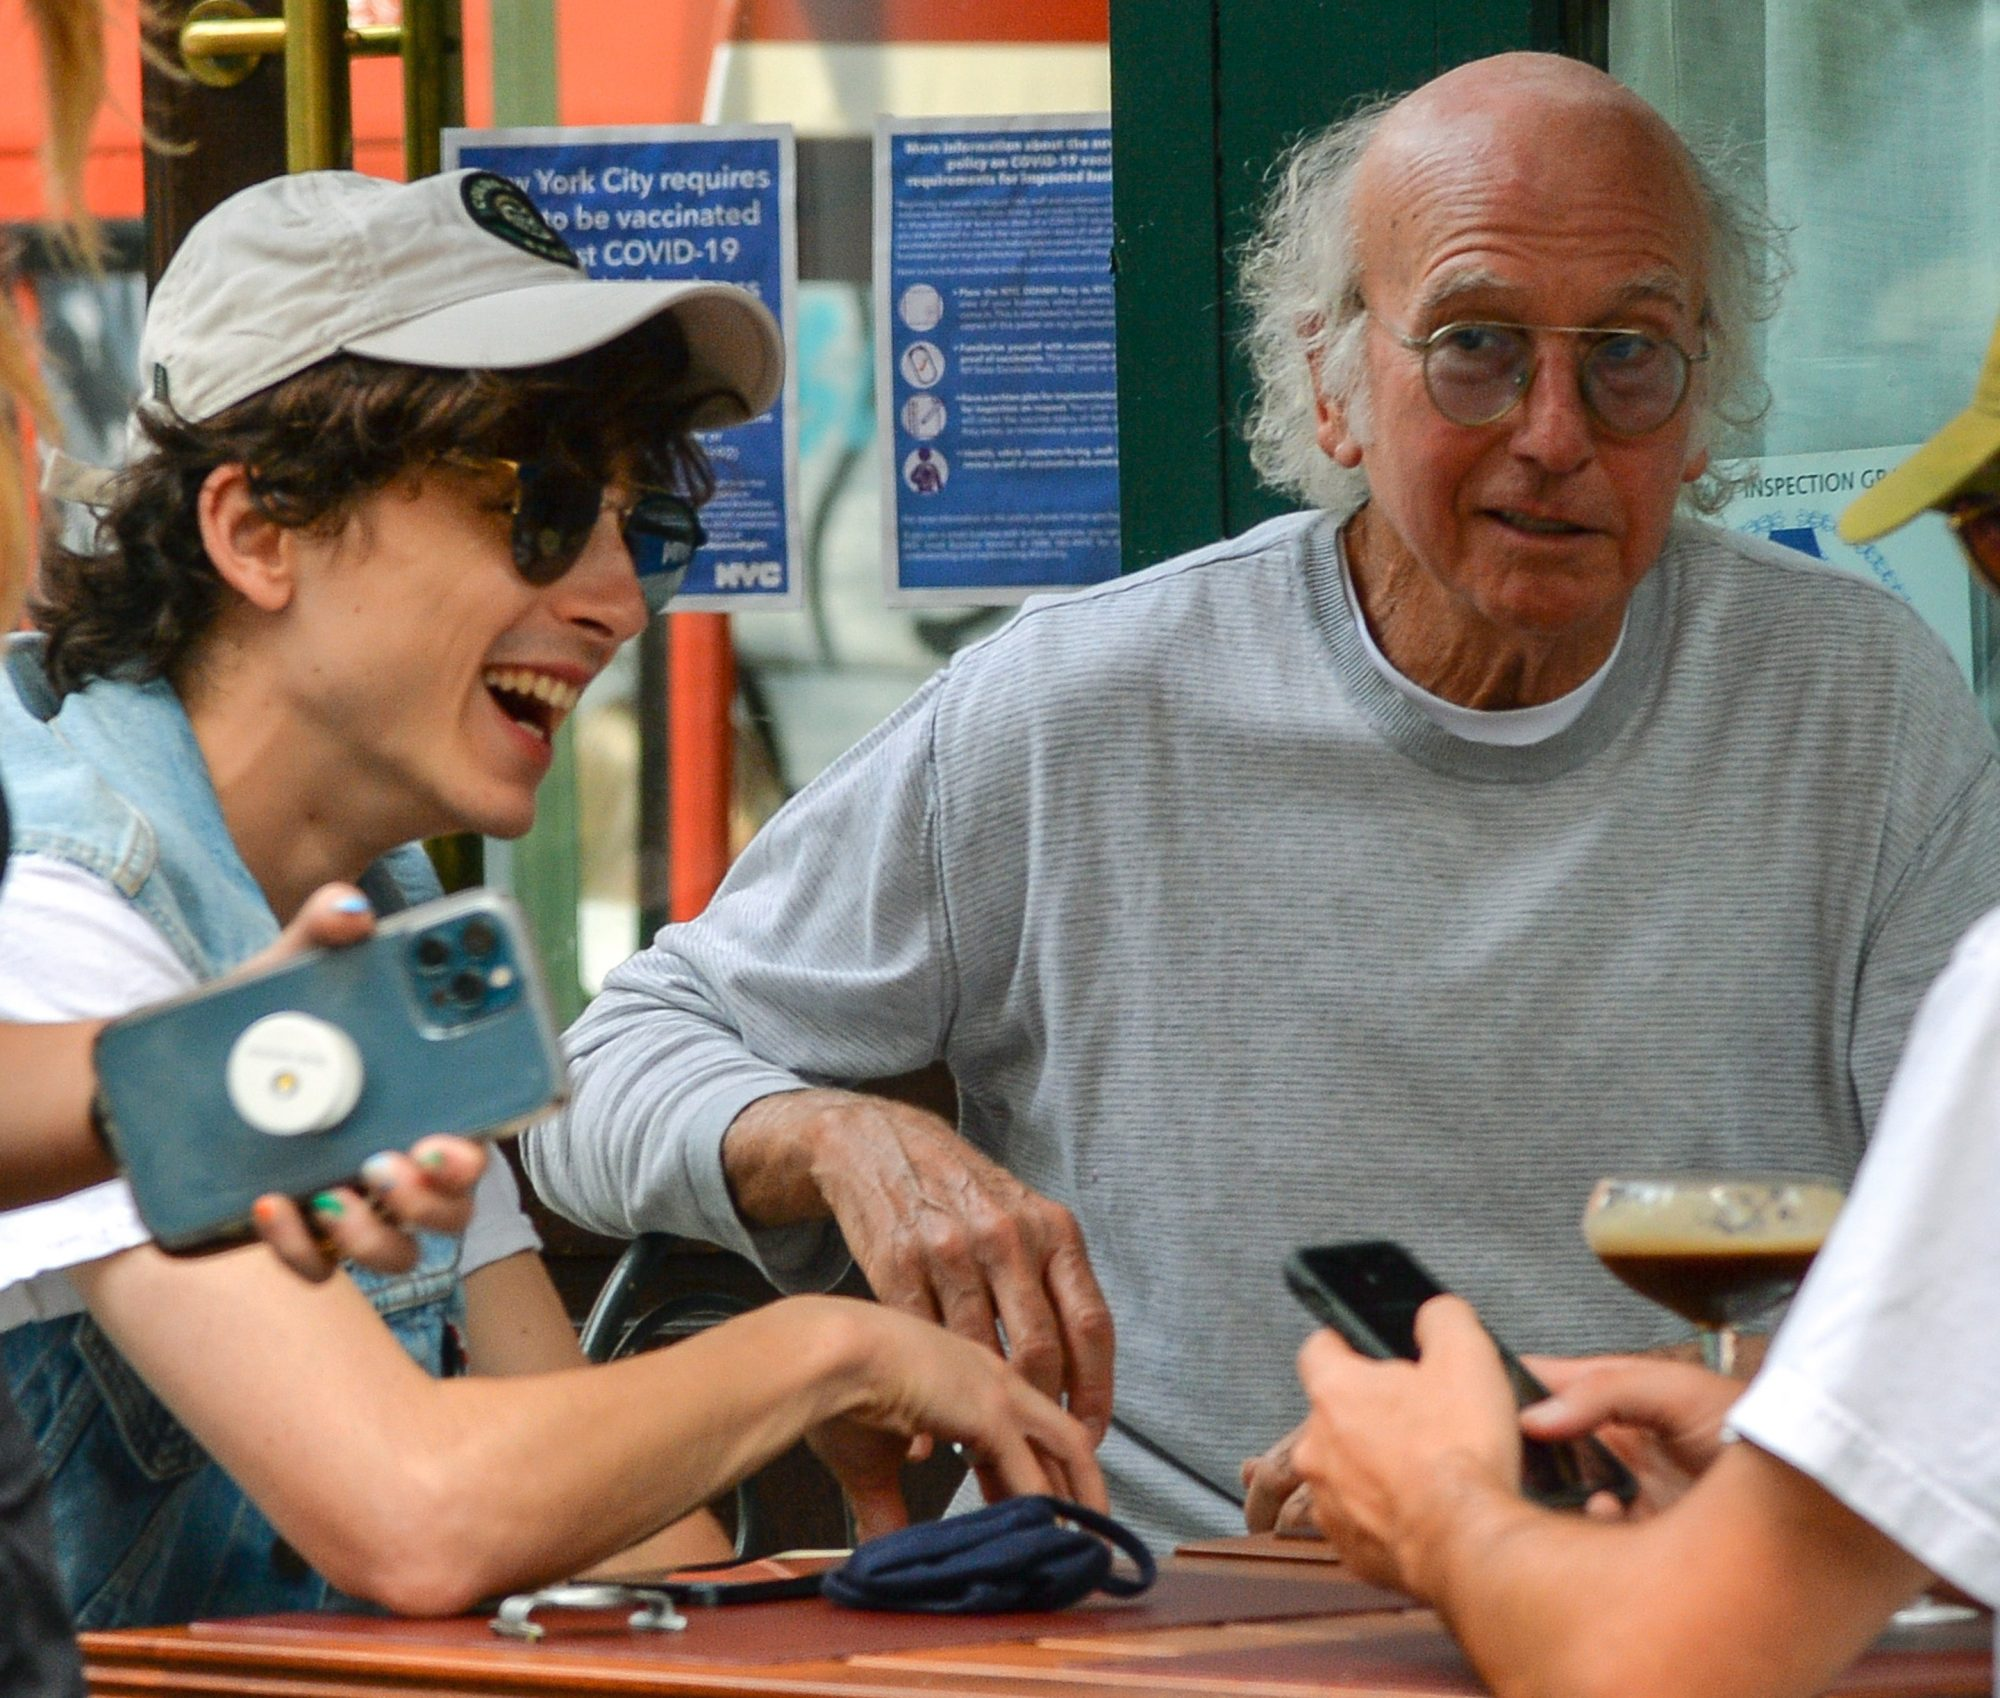 larry david and timothee chalamet